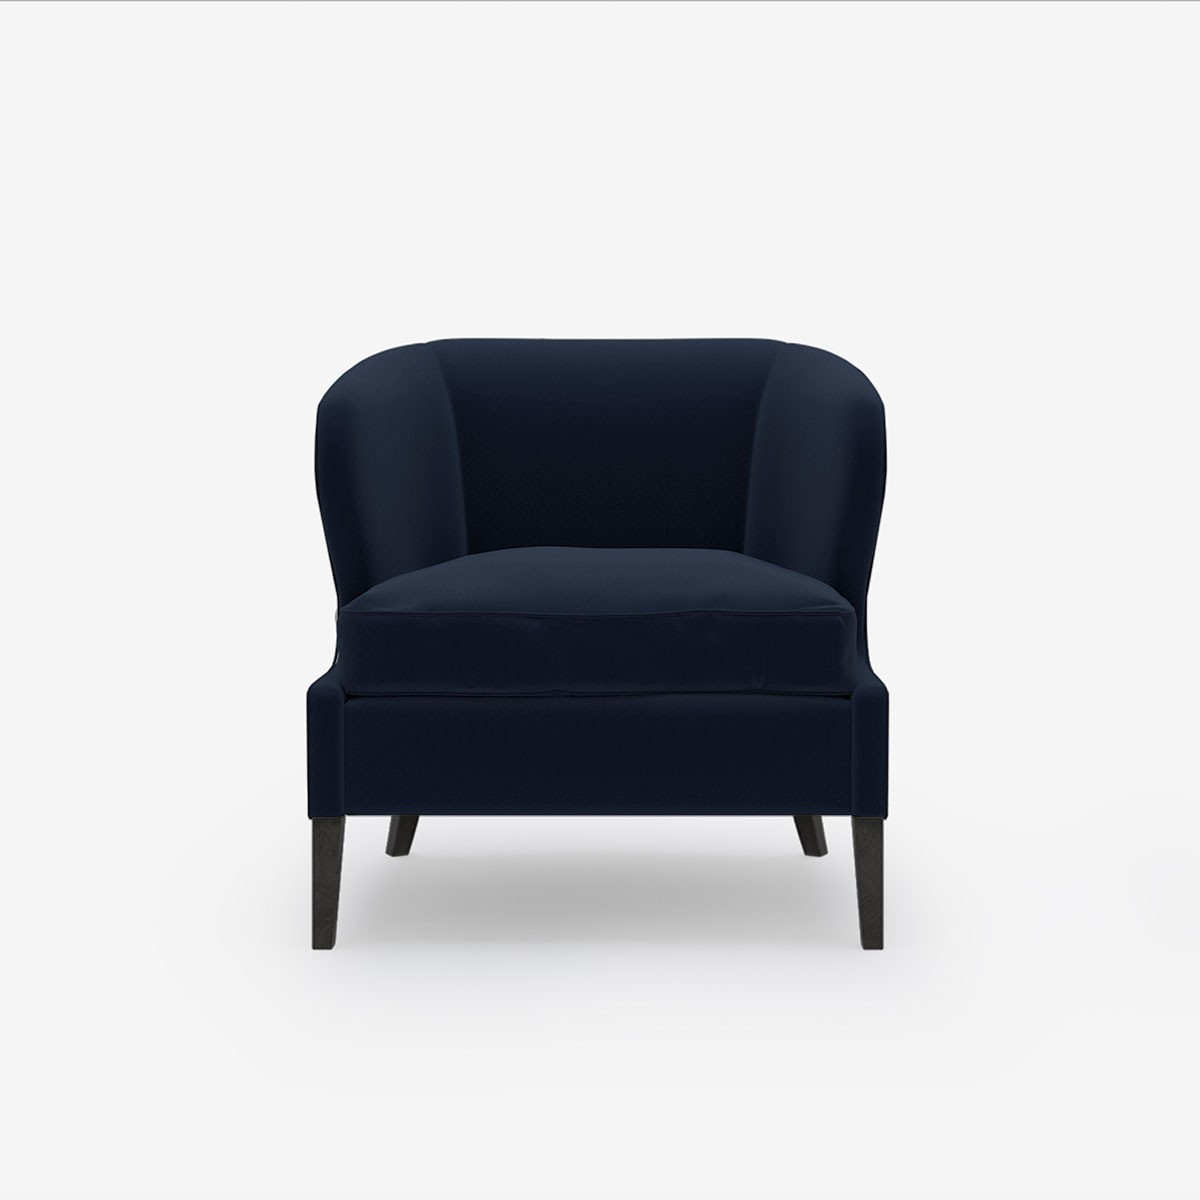 Image shows Livvy's Petite Chair in Nordic Linen Midnight Blue